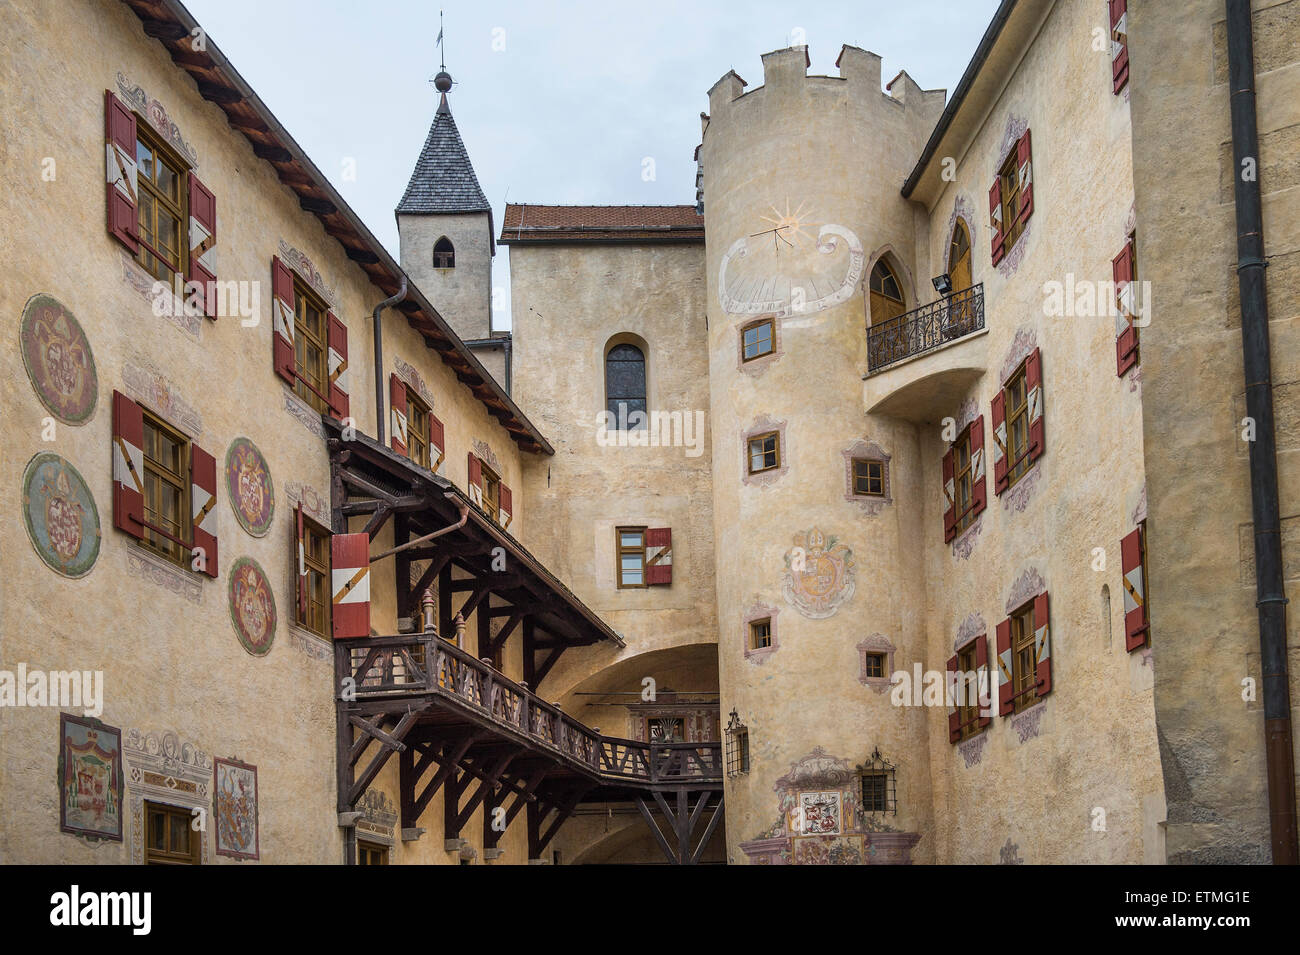 hof messner mountain museum mmm ripa in bruneck schloss bruneck s d tirol italien stockfoto. Black Bedroom Furniture Sets. Home Design Ideas